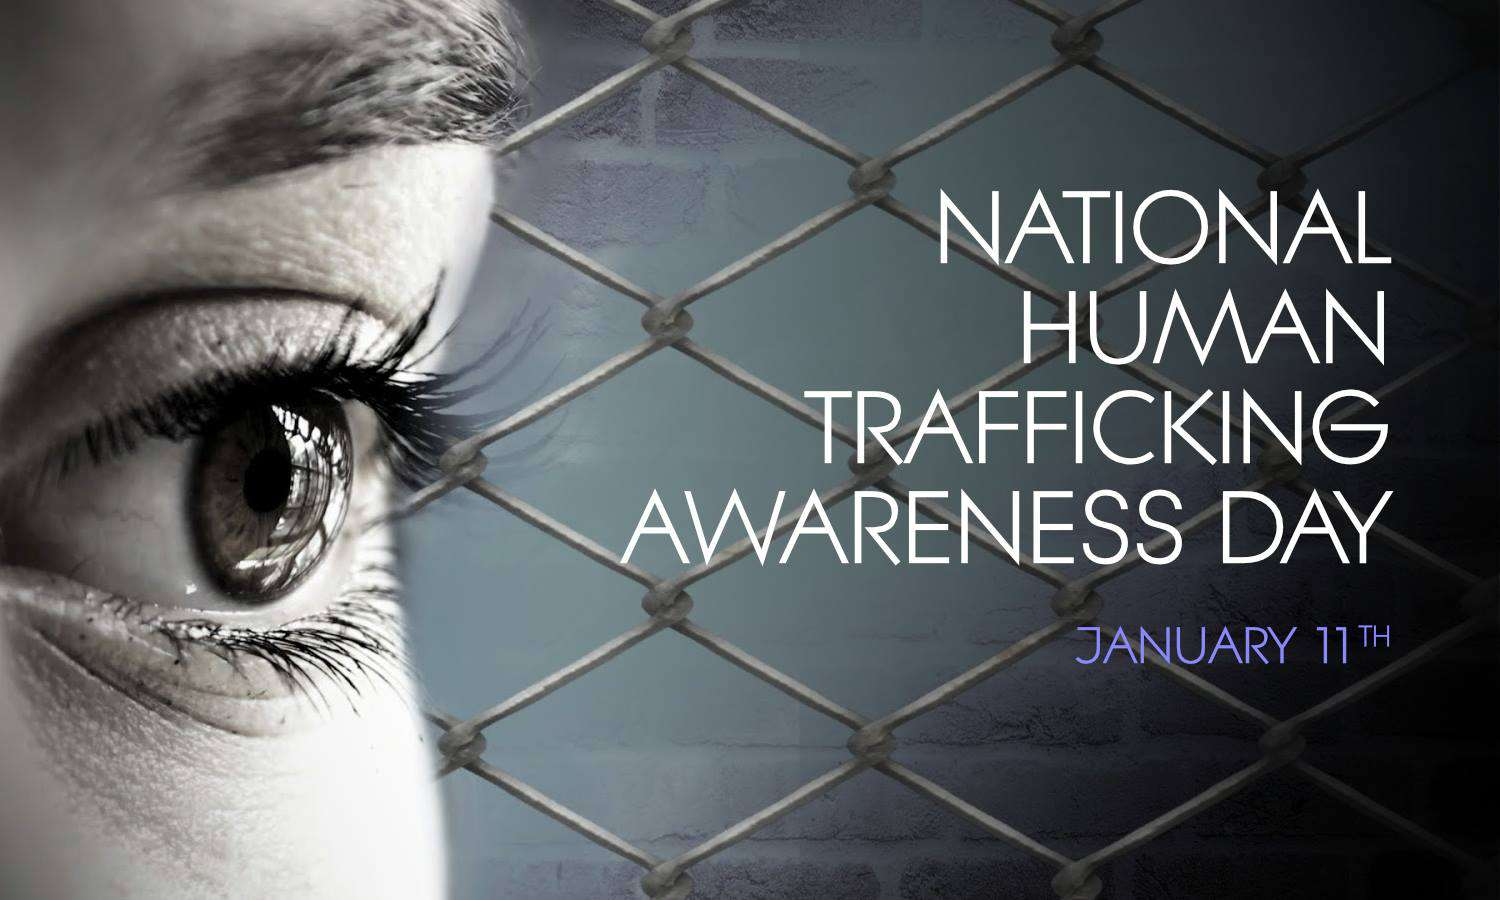 National Human Trafficking Awareness Day Wishes Awesome Picture